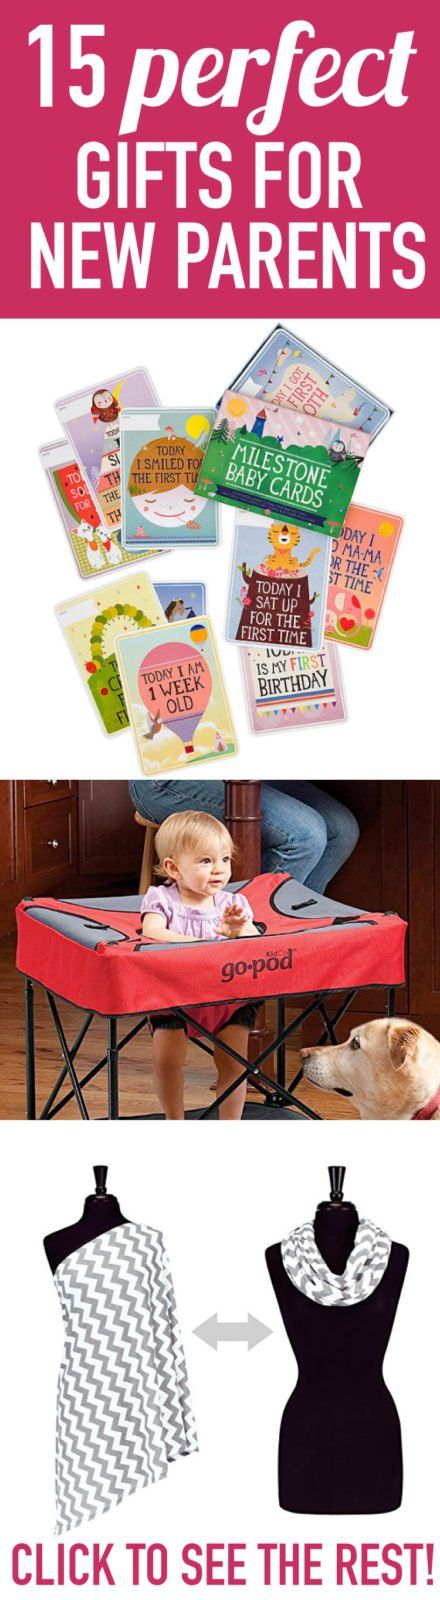 Sweet & Practical Gifts for New Parents | Designertrapped.com